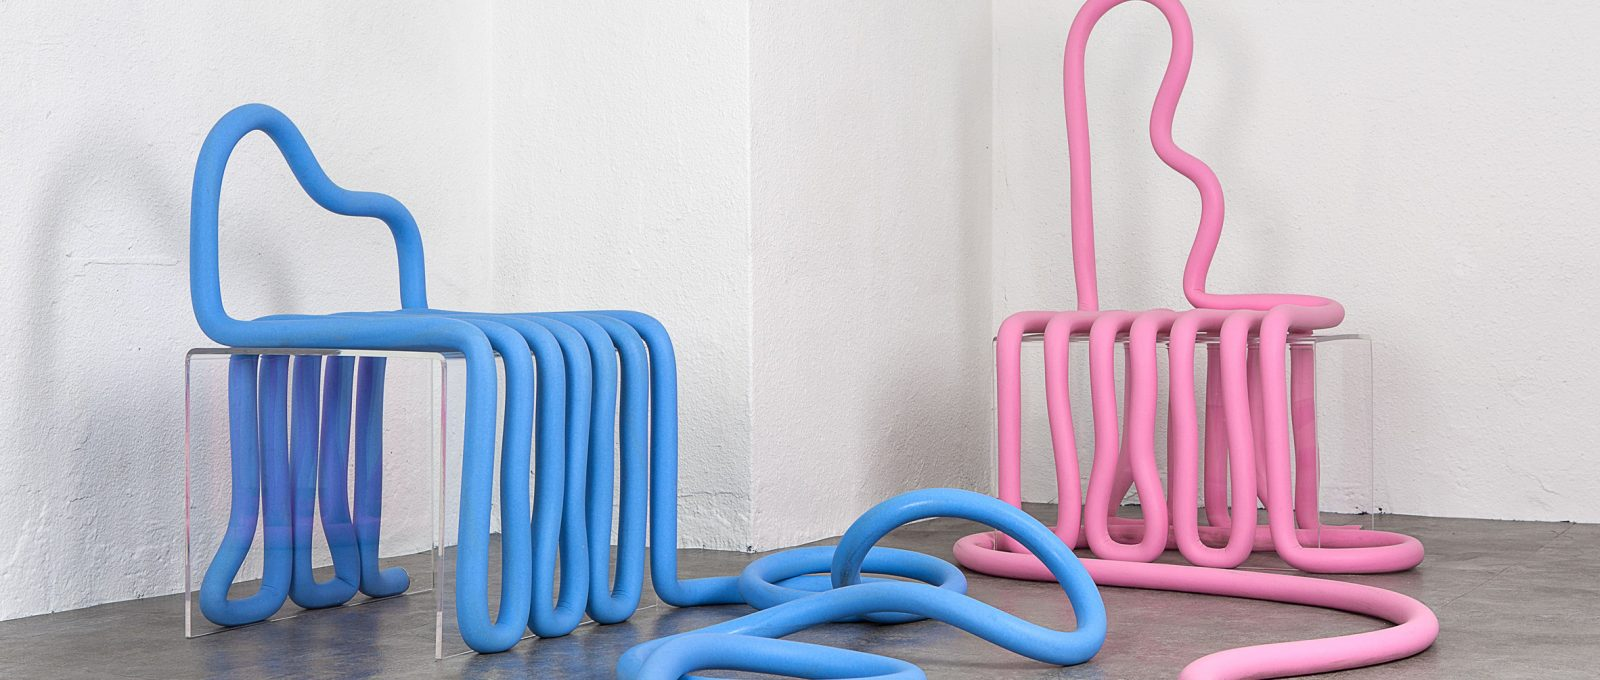 Mono by Jeong Greem, a foam tube for an entire furniture collection.